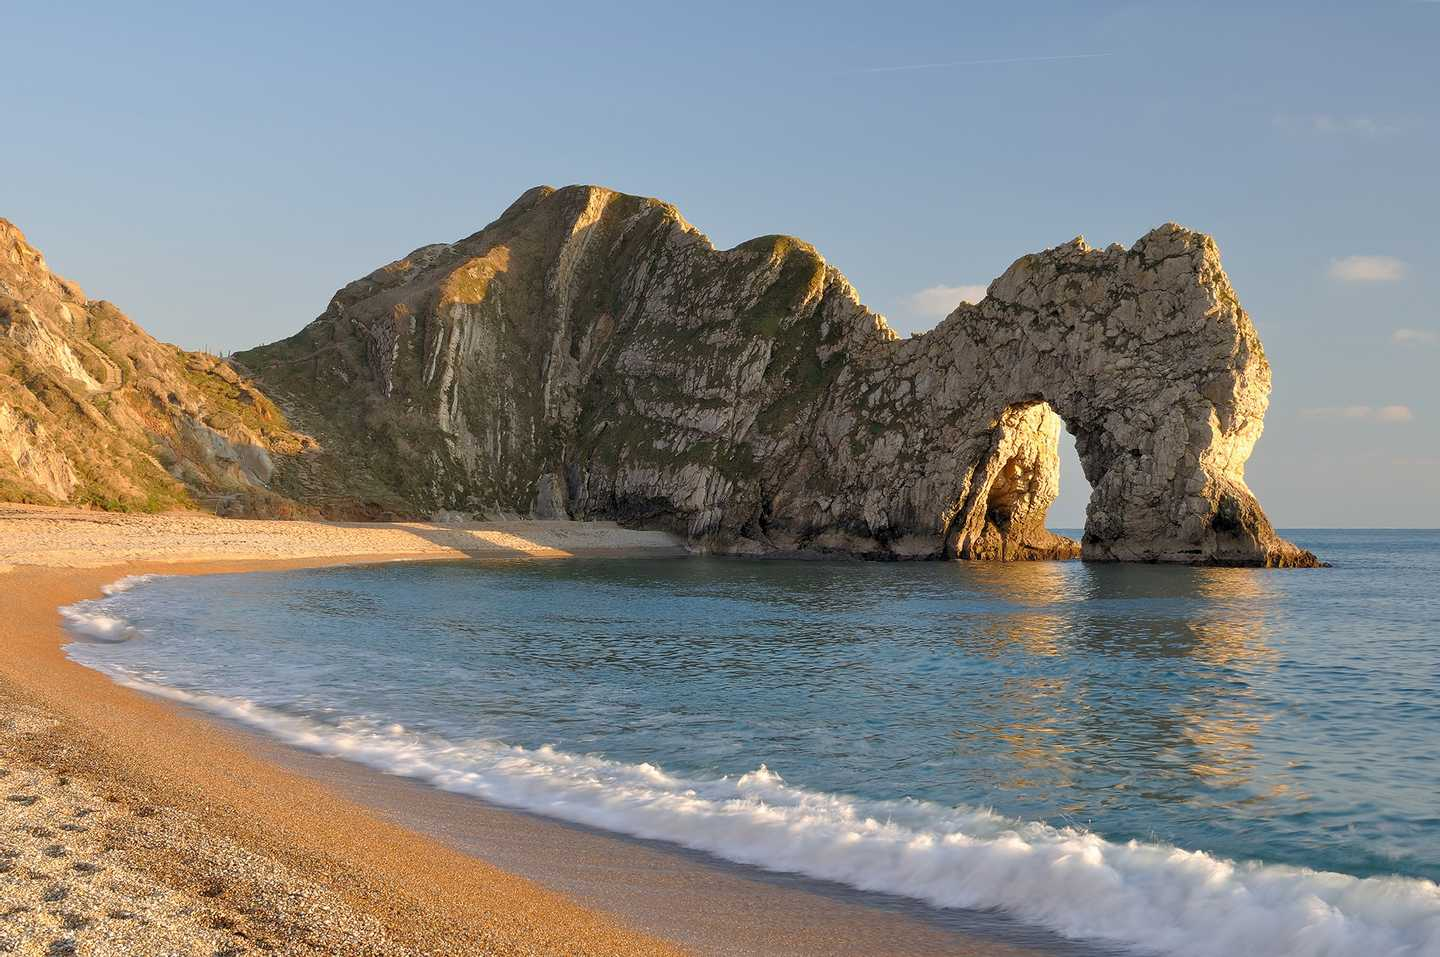 world famous stone arch, Durdle Door